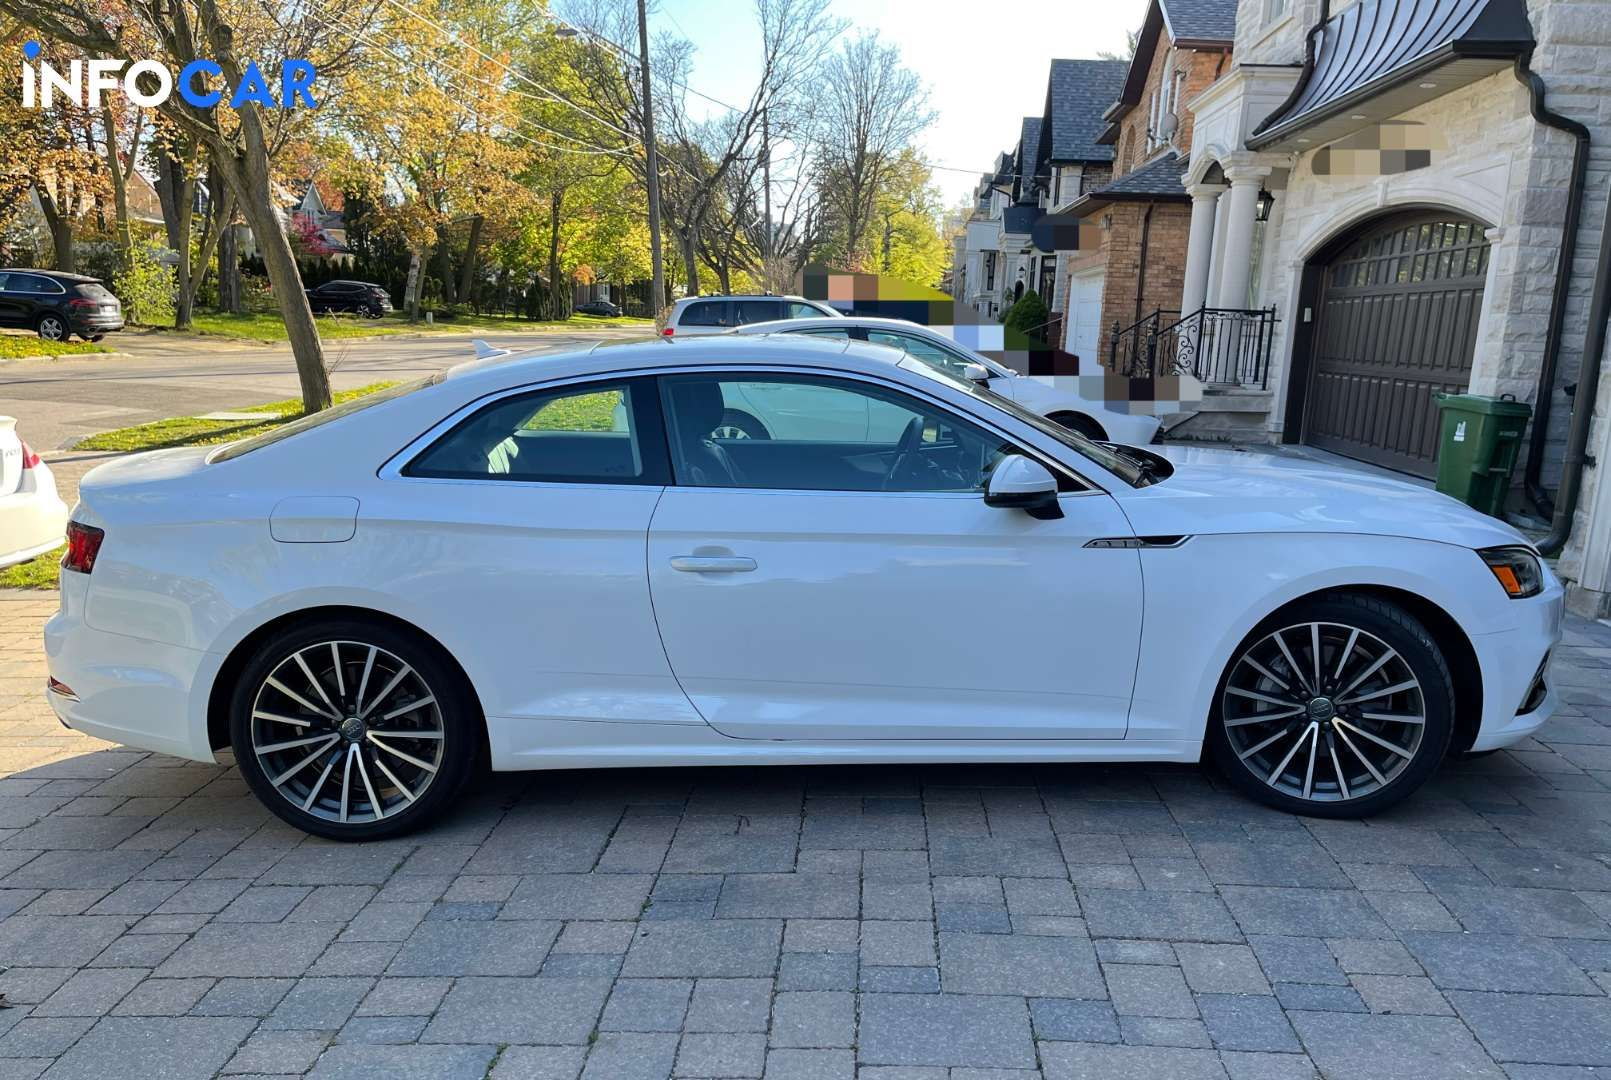 2019 Audi A5 A5 Coupe - INFOCAR - Toronto's Most Comprehensive New and Used Auto Trading Platform